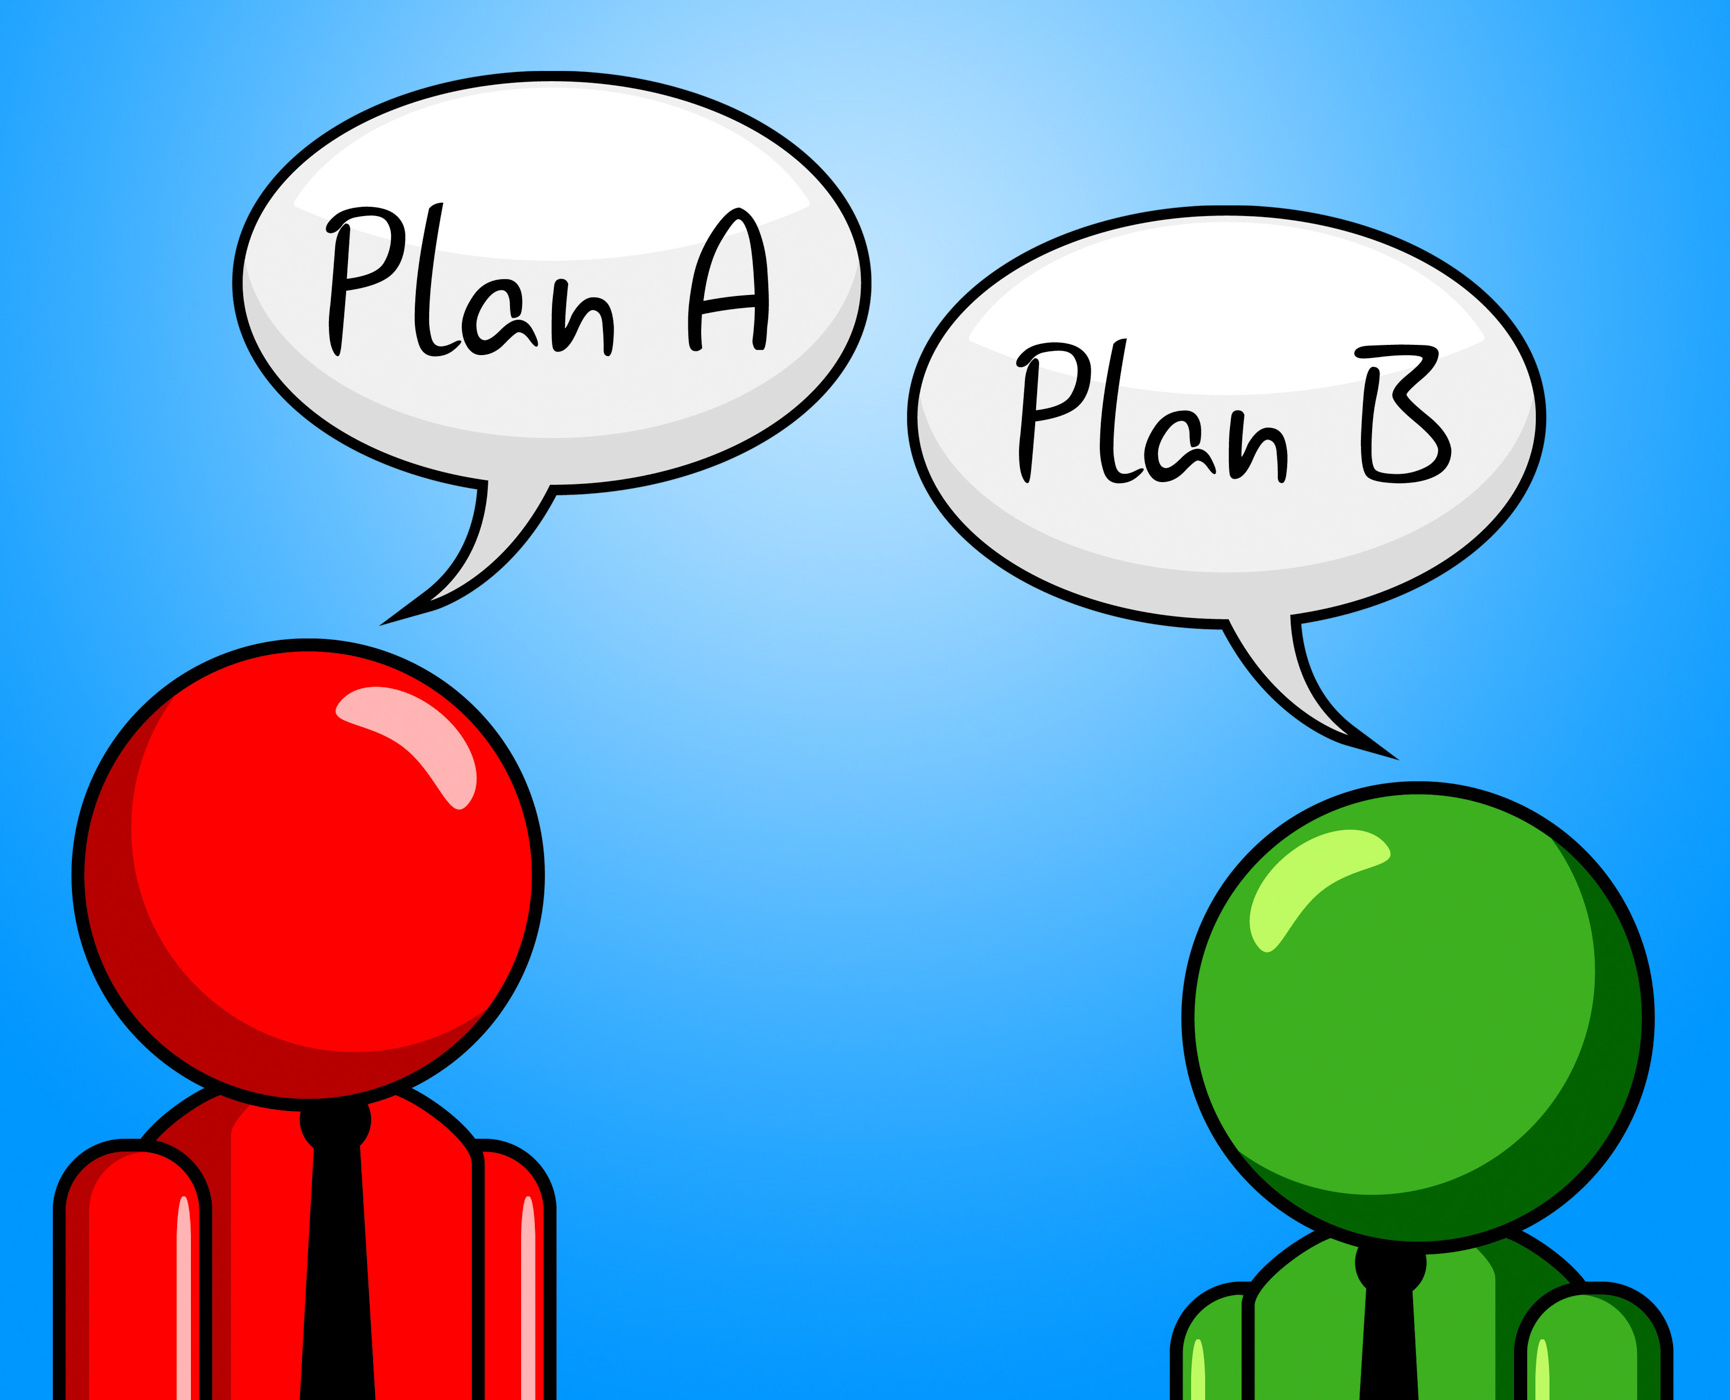 Plan B Indicates Fall Back On And Agenda, Agenda, Ploy, Suggestion, Substitute, HQ Photo